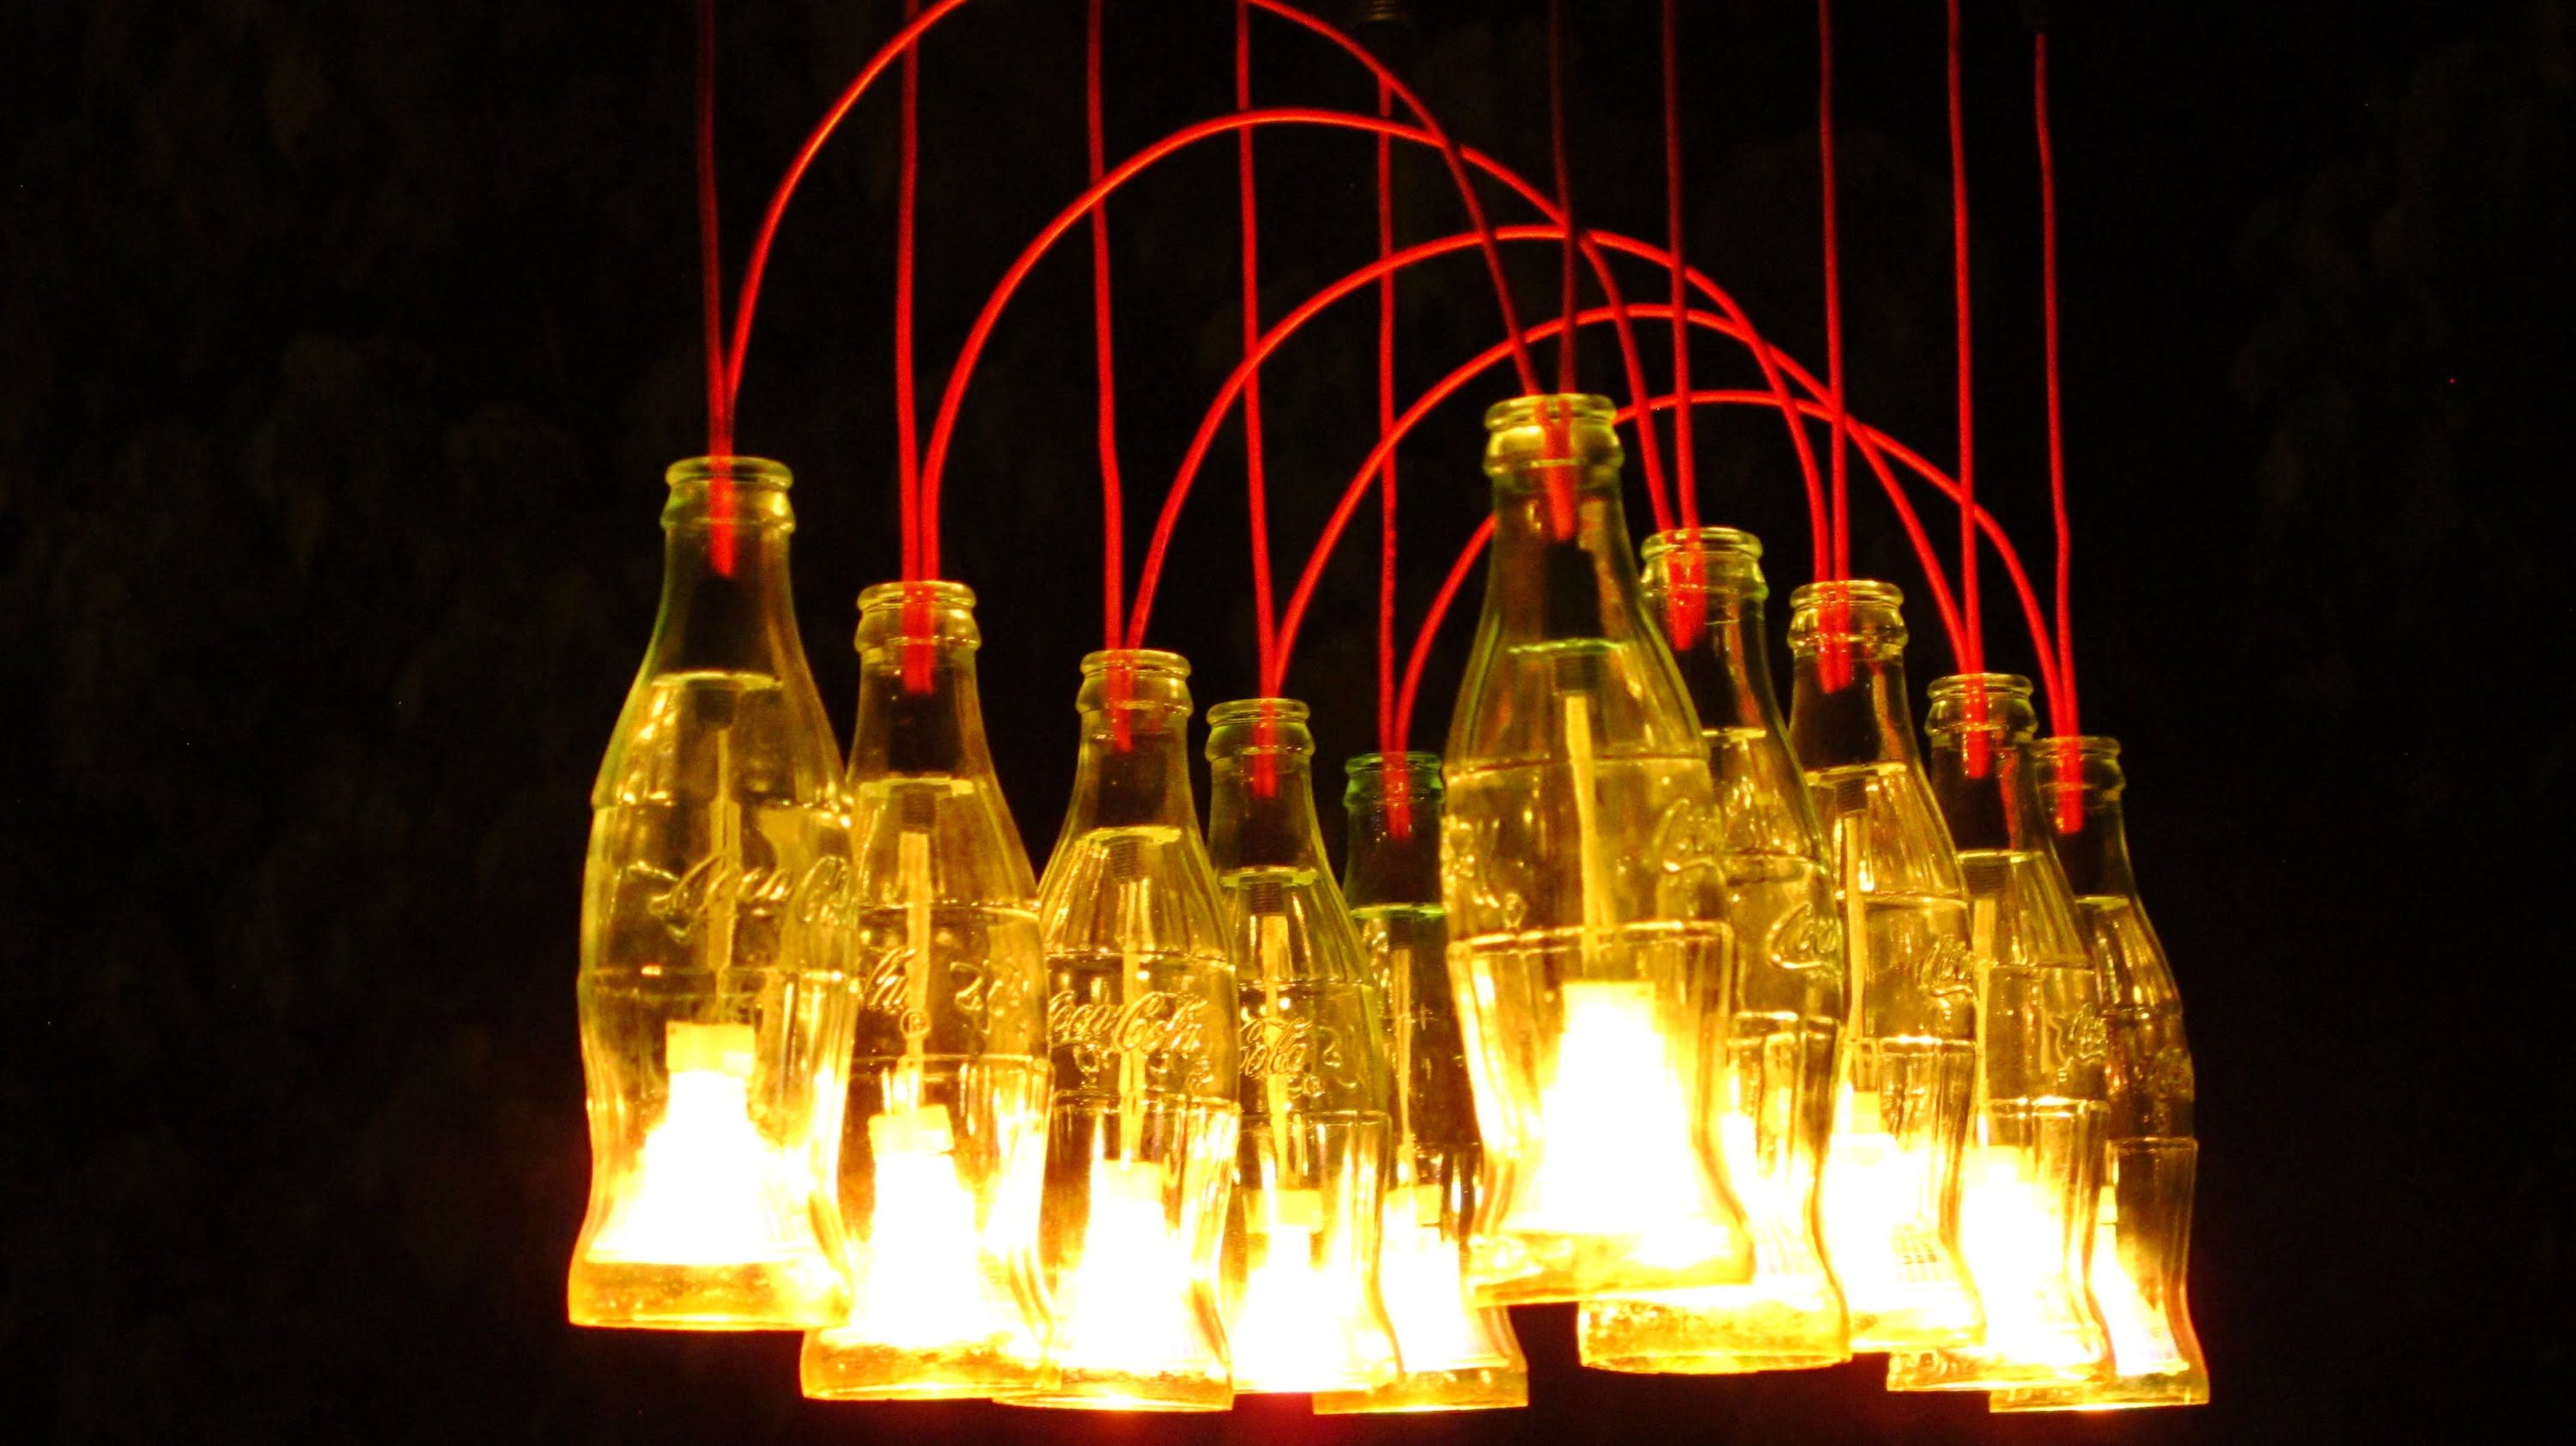 Recycled coca cola bottles made into a chandelier diy pipepallet recycled coca cola bottles made into a chandelier arubaitofo Image collections